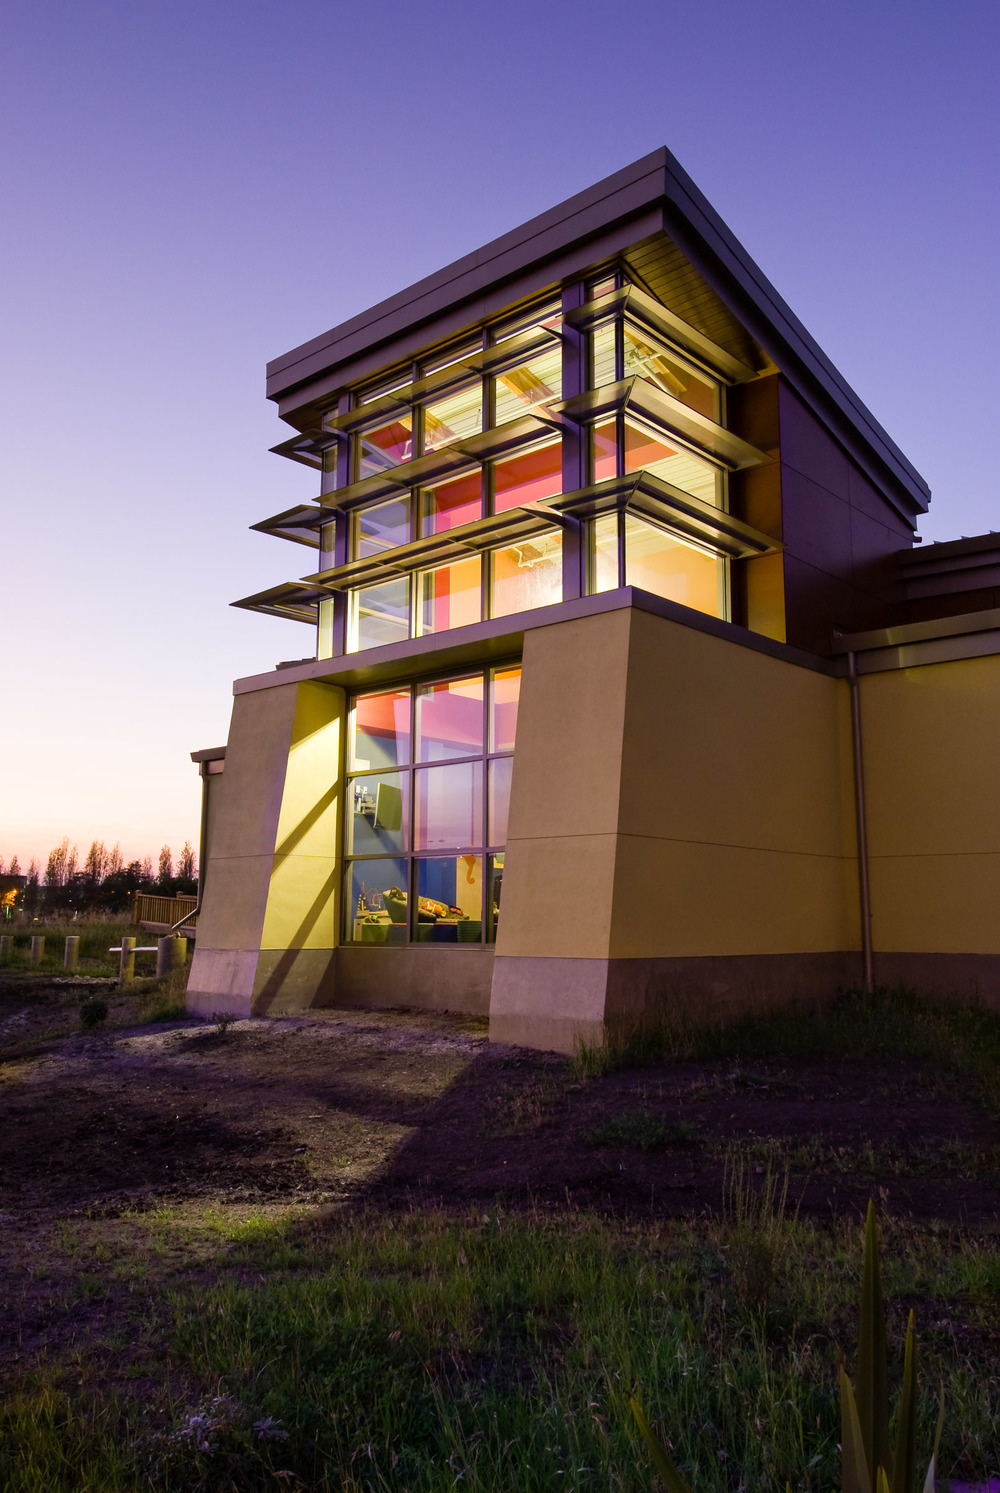 Redwood Shores Public Library, Children's Reading Room, Exterior, Dusk Photographed for Anderson Brule´ Architects, Kitchell CEM and OMM Consulting 2009 WCC Outstanding Achievment Award Communicating the design concept required photographing the tower at dusk. Shooting into the sunset was not a challenge because we had to shoot very late in the day to capture the light spilling out into the marsh.